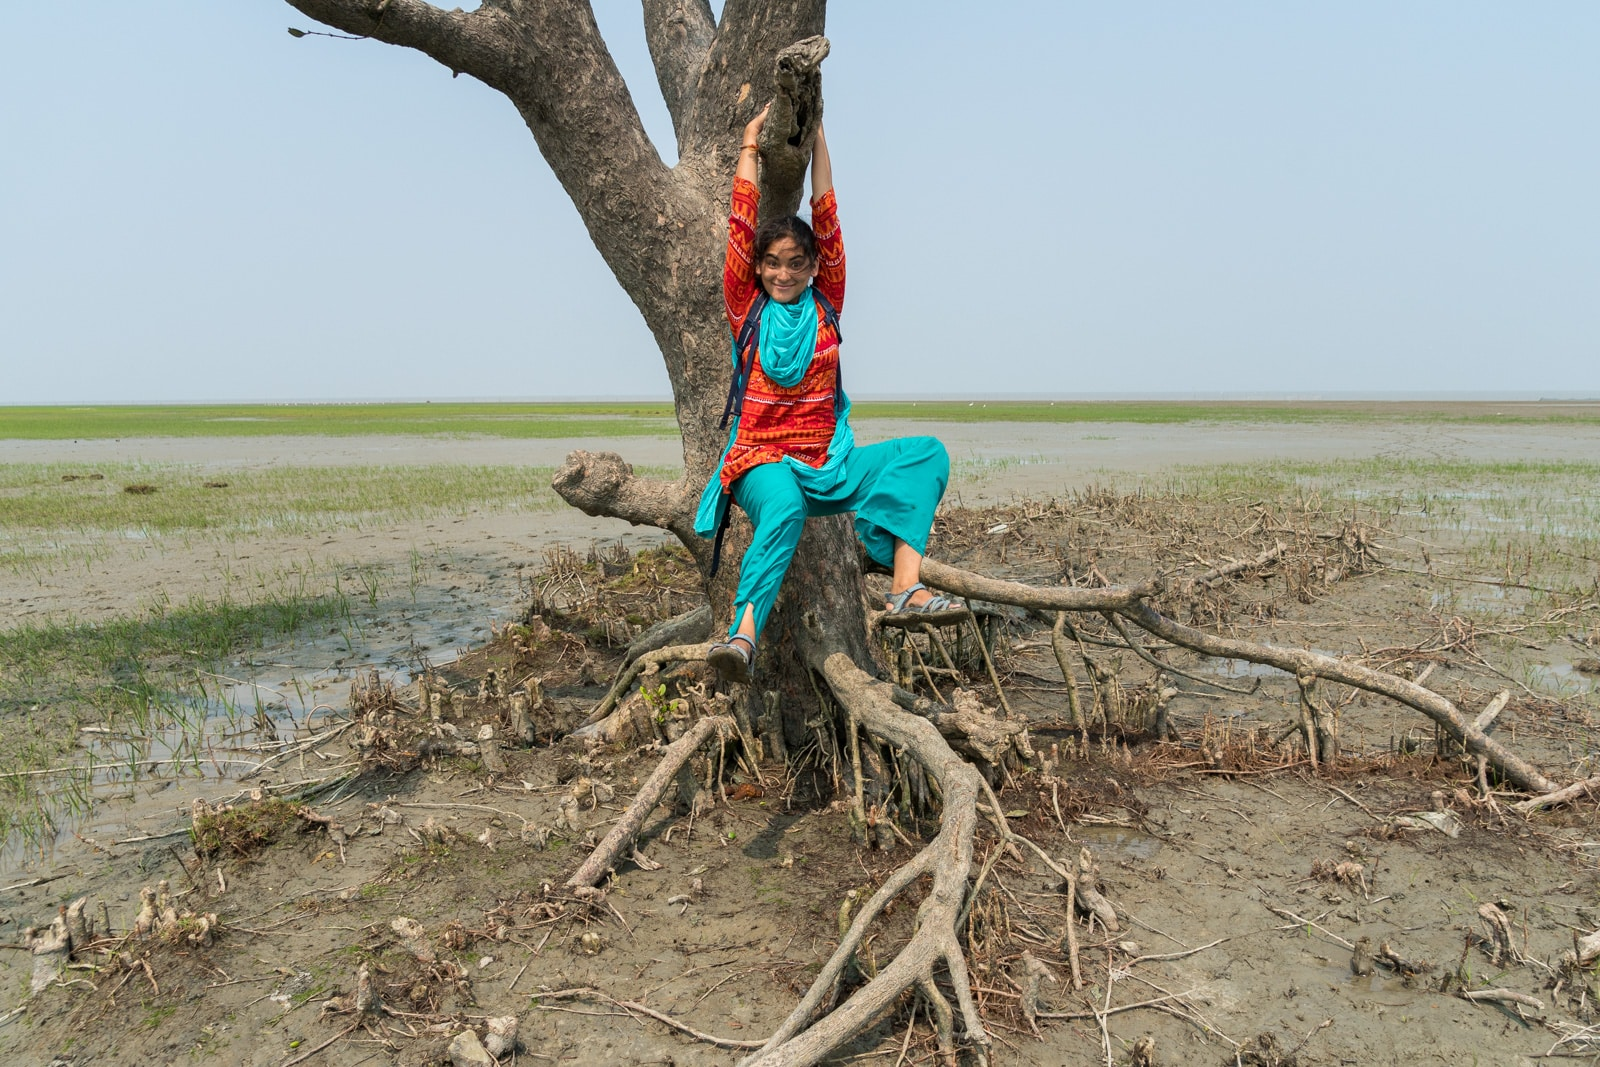 What is Lost With Purpose? - Alex swinging on a tree in Hatiya, Bangladesh - Lost With Purpose travel blog